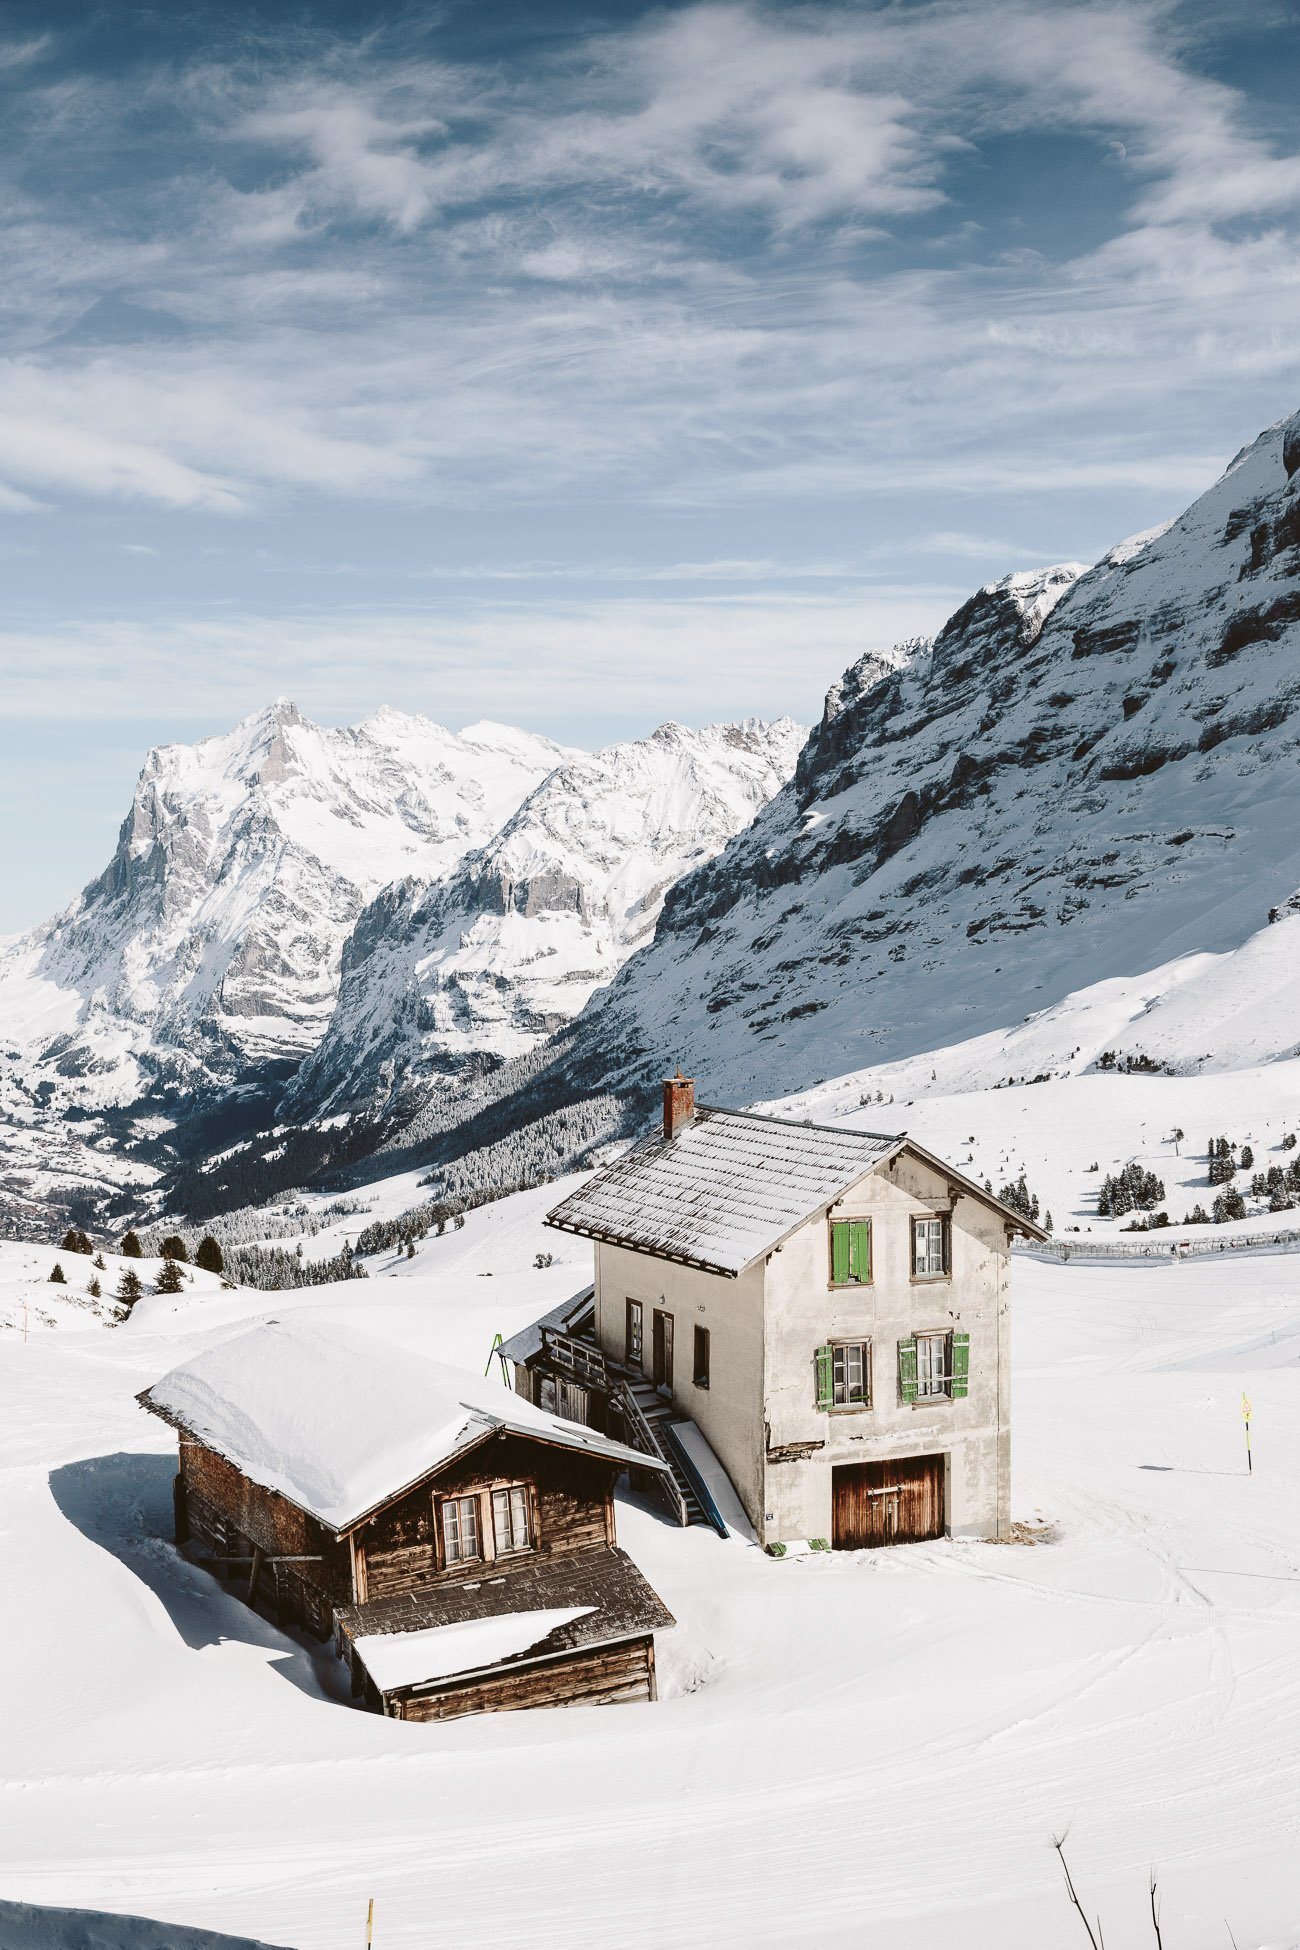 Kleine Scheidegg in Switzerland